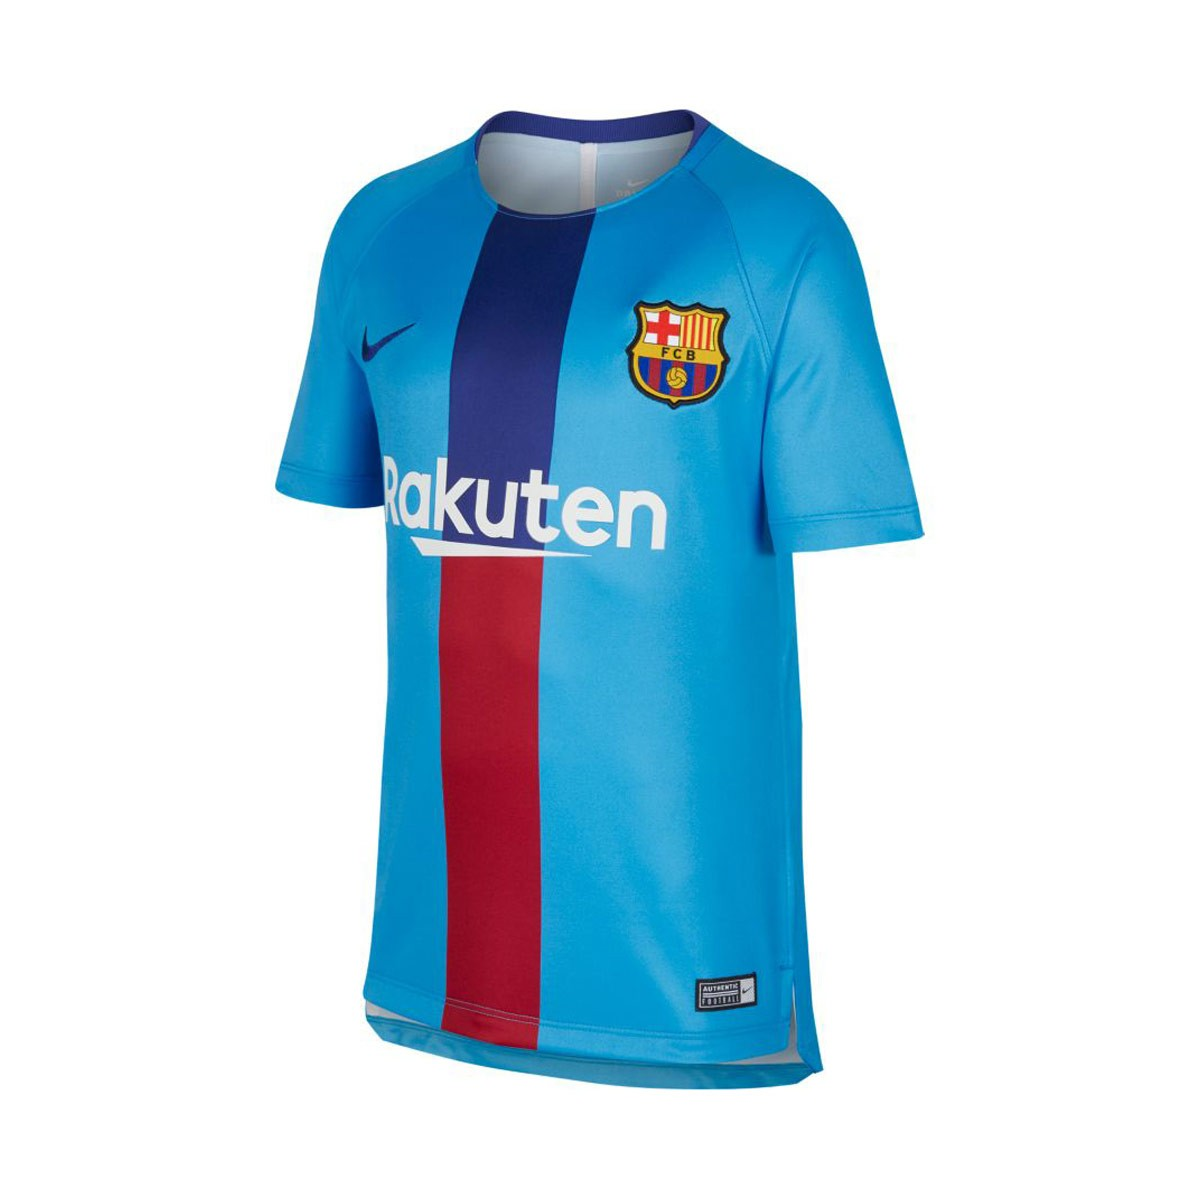 2261f2dbbd6cd Camiseta Nike Dry FC Barcelona Squad 2018-2019 Niño Equator blue-Deep royal  blue - Tienda de fútbol Fútbol Emotion